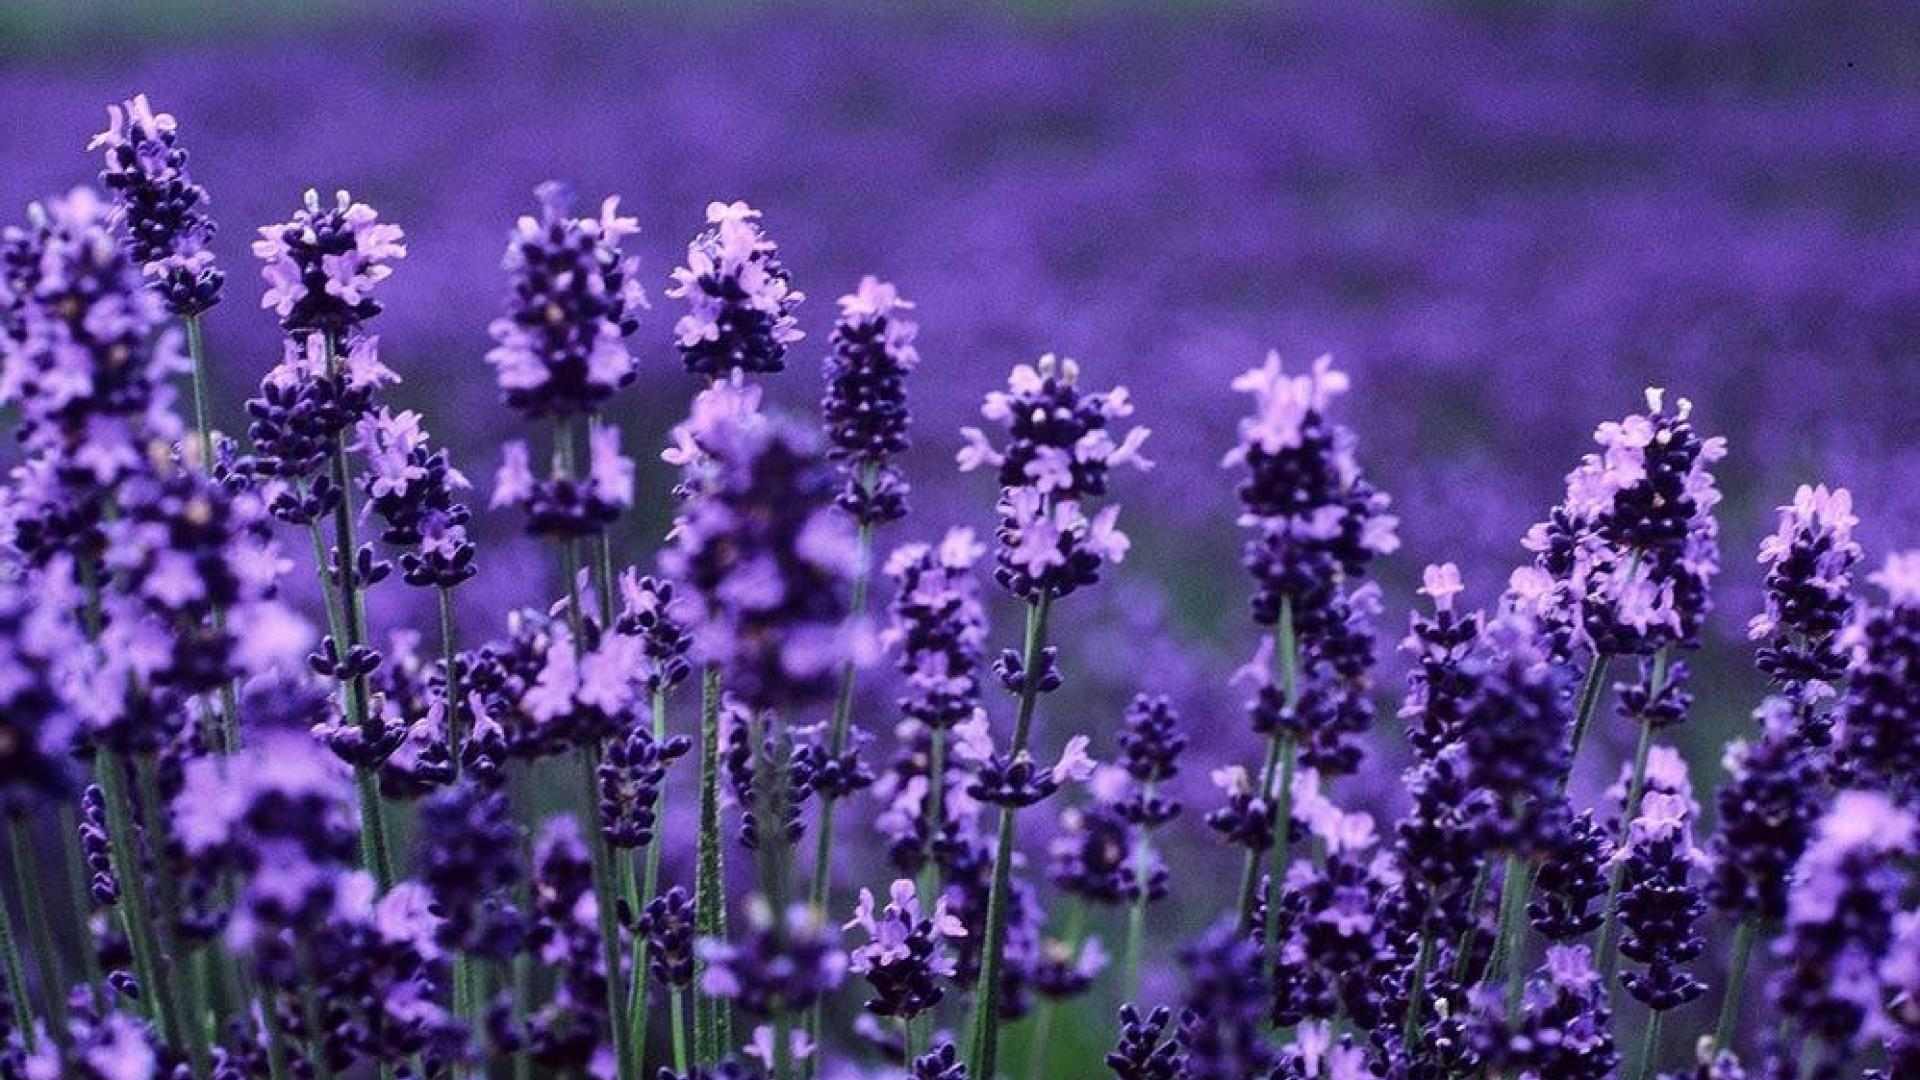 Lavender HD   Wallpaper High Definition High Quality Widescreen 1920x1080